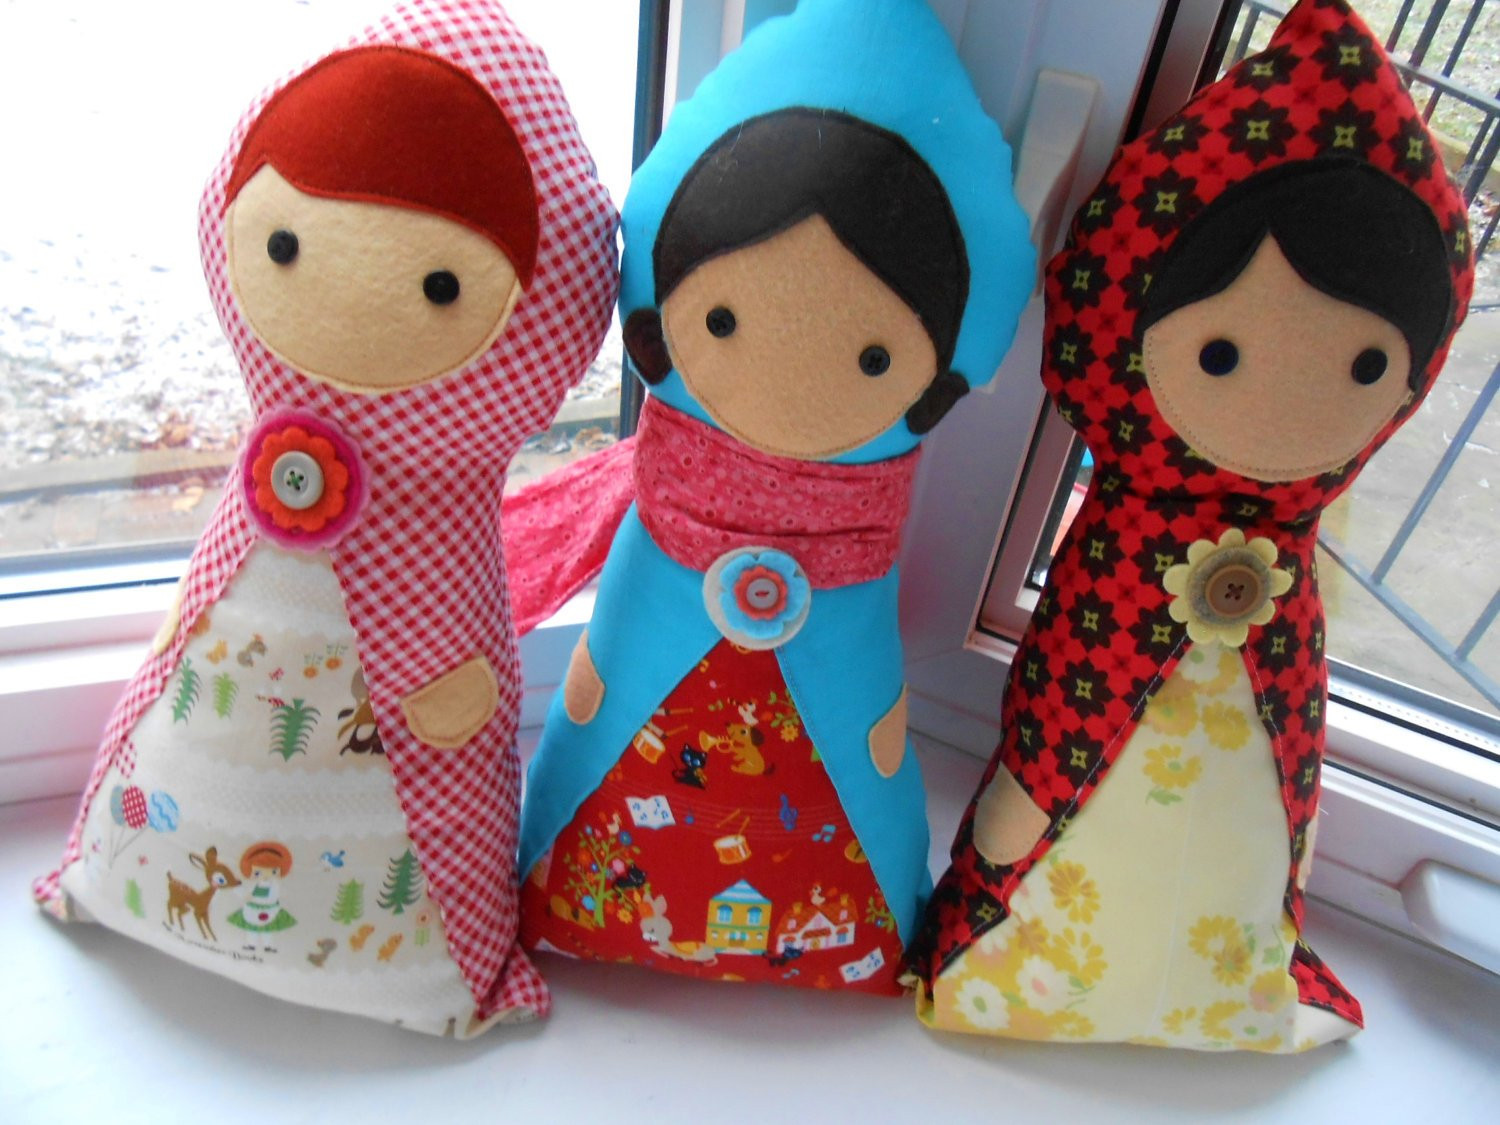 Doll Patterns Inspirational Little Traveller Doll Pdf Sewing Pattern Rag Doll Of Doll Patterns Best Of Rag Doll Patterns